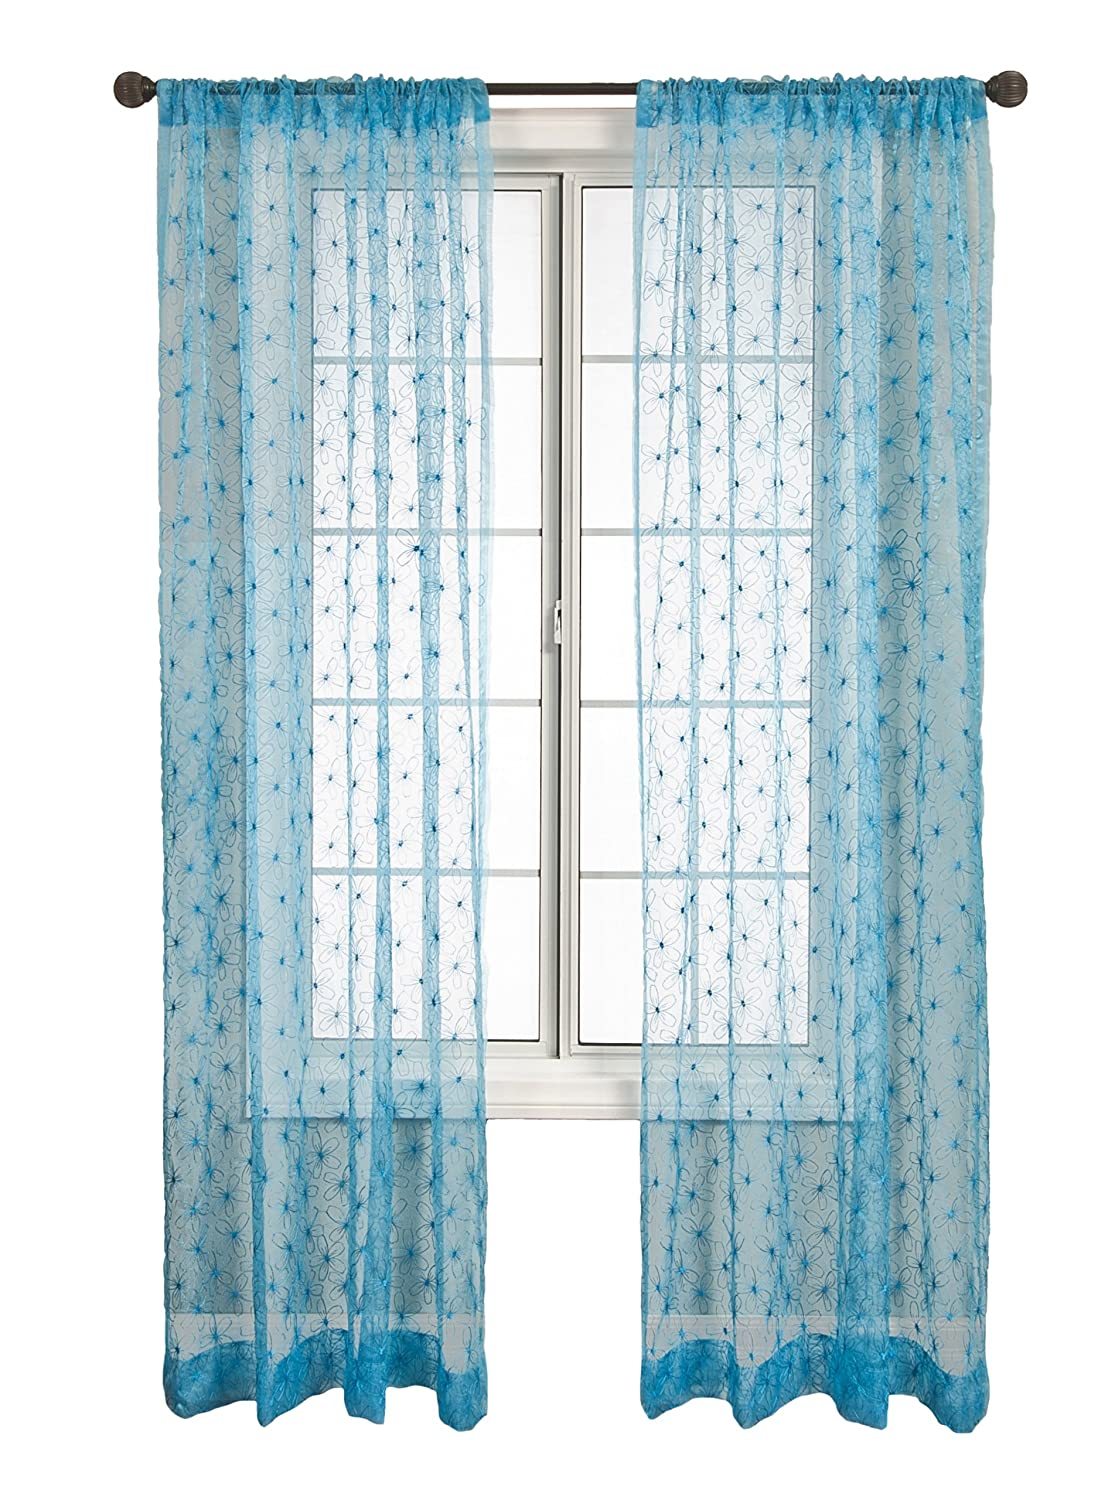 Diplomat Decor Kors 120-Inch Rod Pocket Panel, Blue FANBLU120RPP